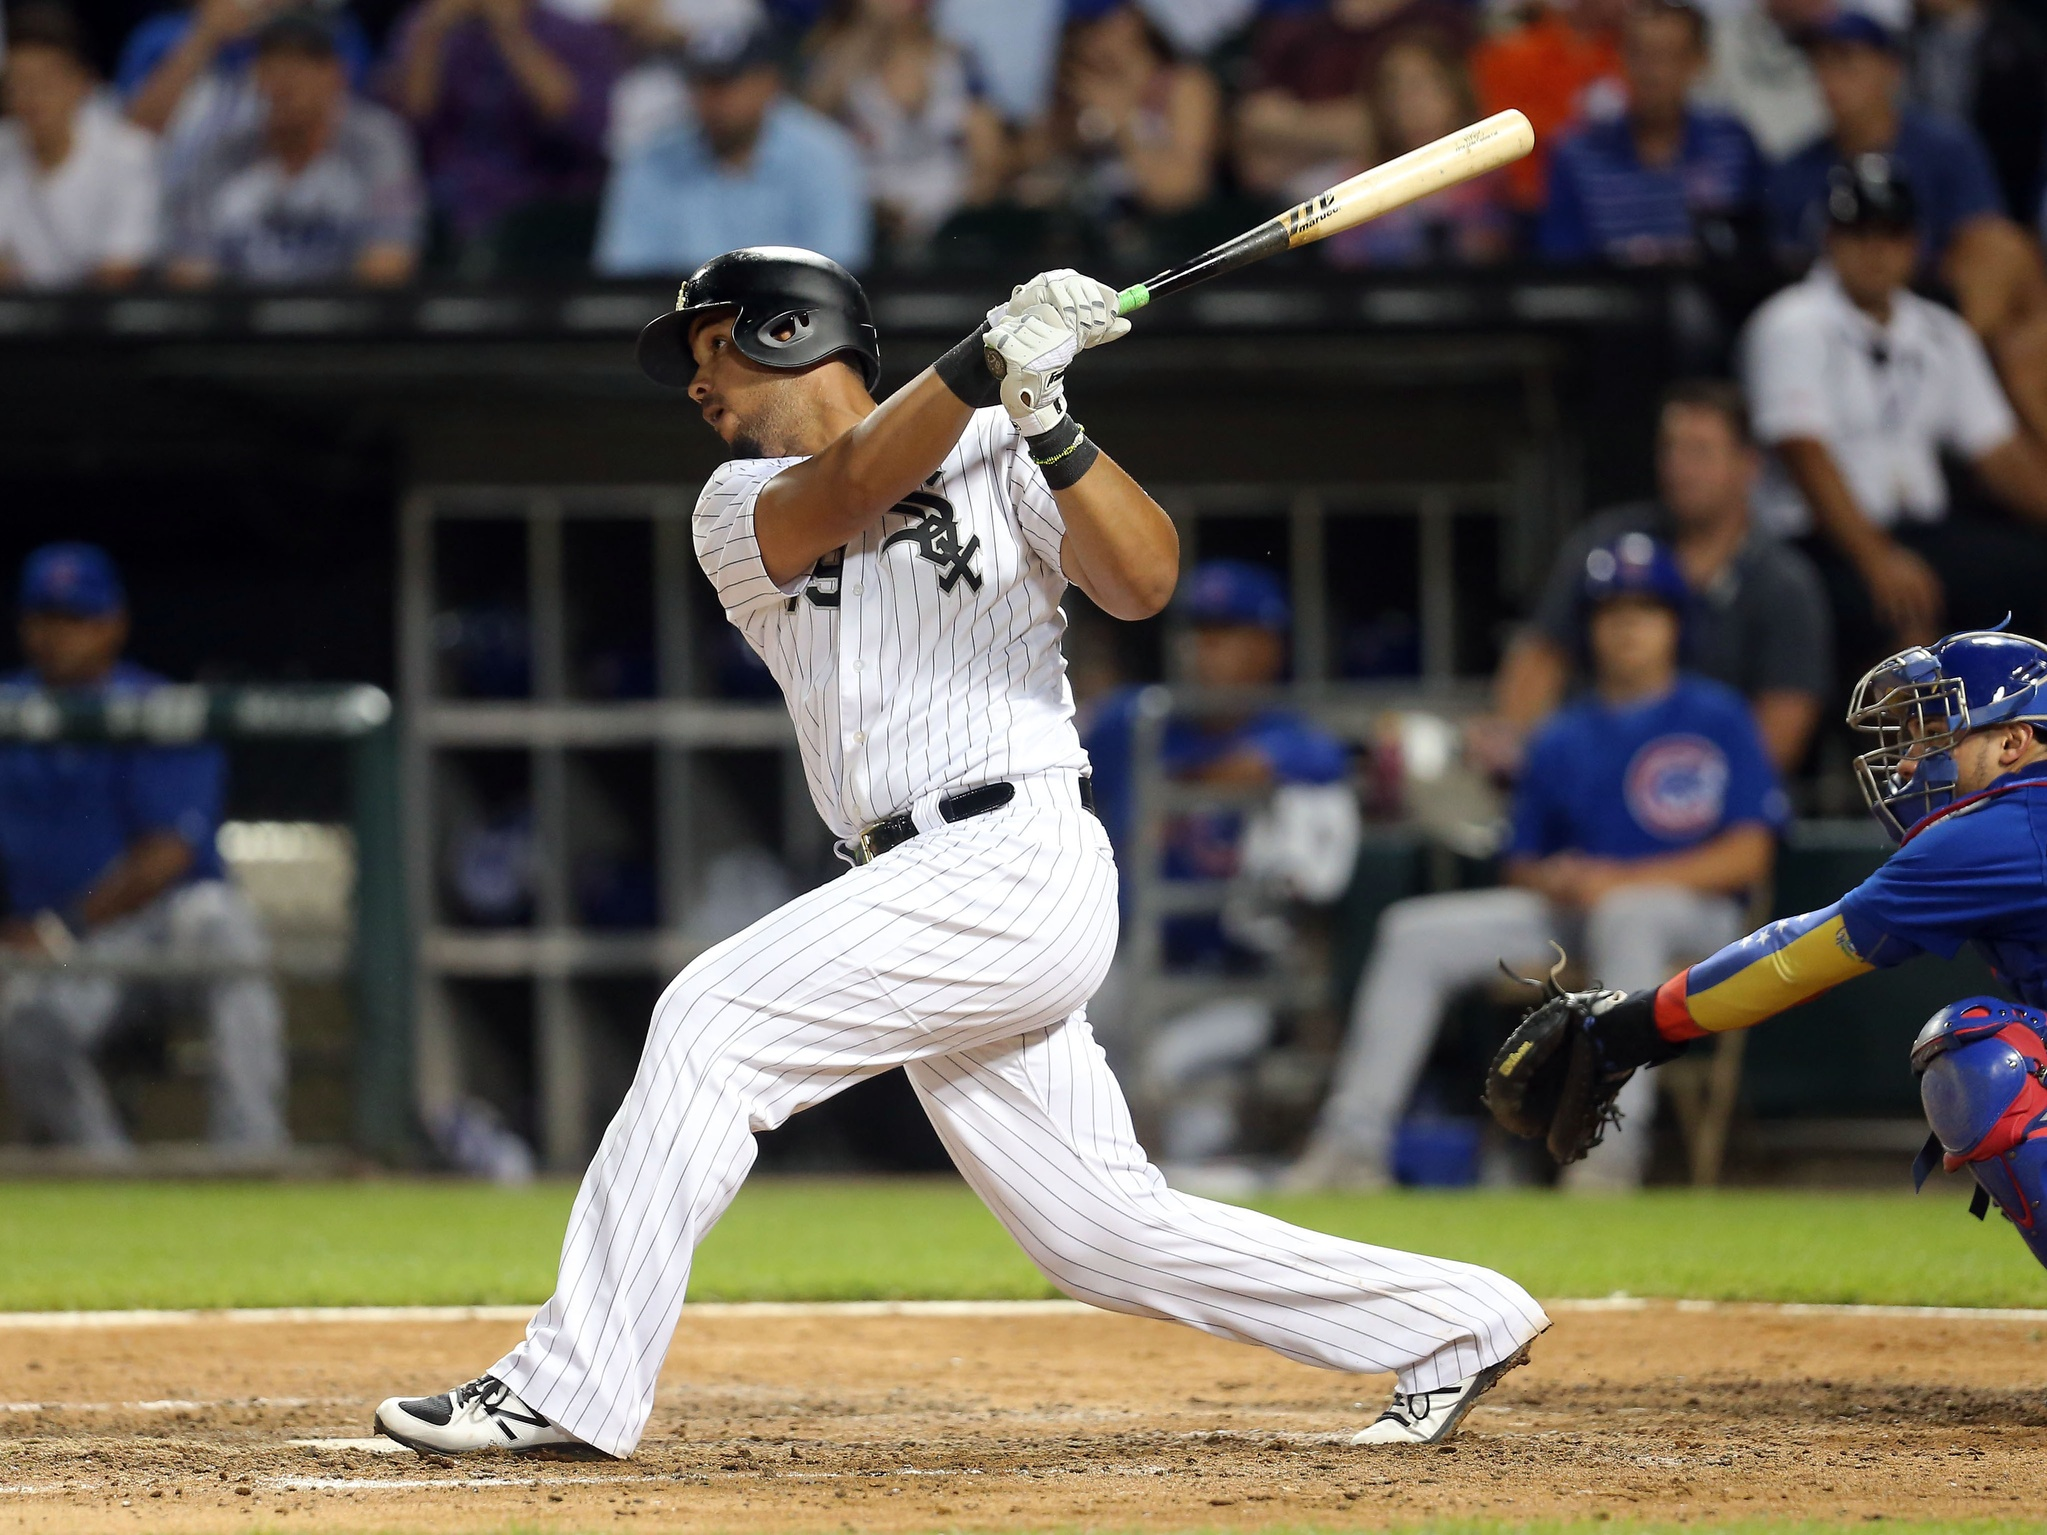 Jul 27, 2017; Chicago, IL, USA; Chicago White Sox first baseman Jose Abreu (79) hits a solo home run during the ninth inning against the Chicago Cubs at Guaranteed Rate Field. Mandatory Credit: Dennis Wierzbicki-USA TODAY Sports